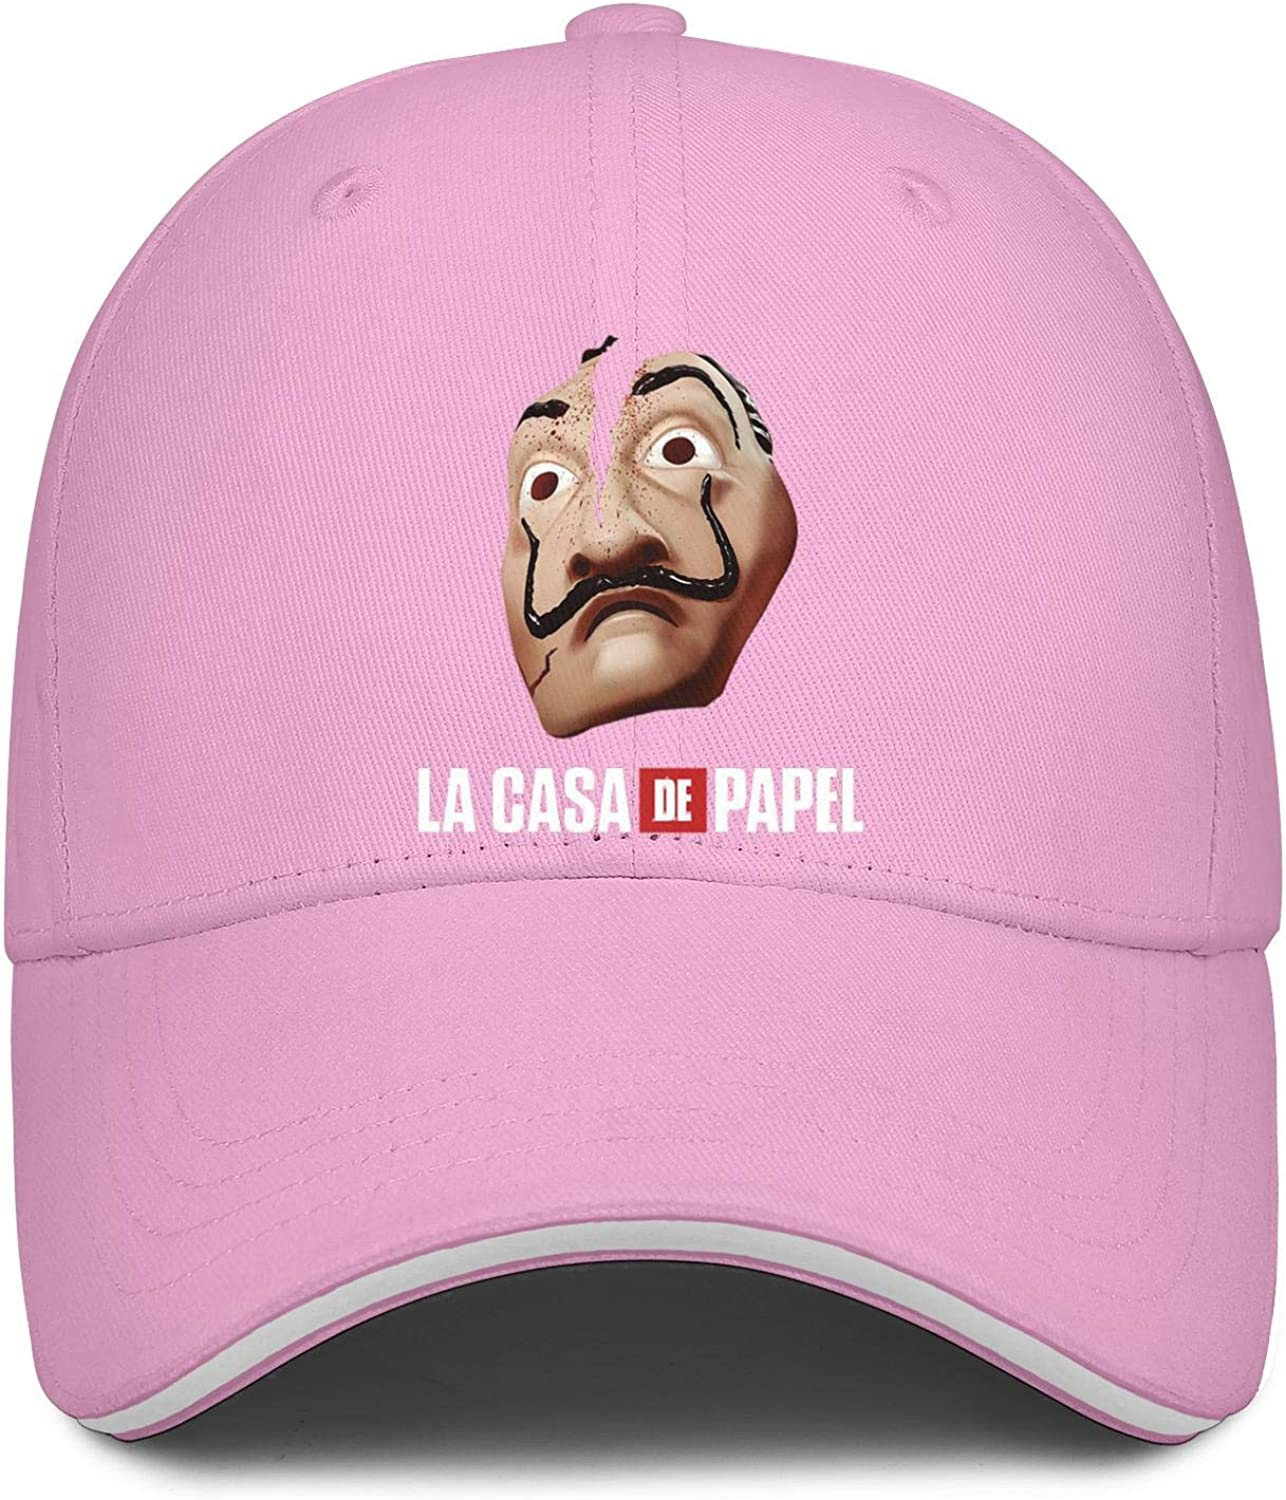 Men Relaxed Flat Hats La Casa De Papel Poster Womens Bucket Fishing Cap